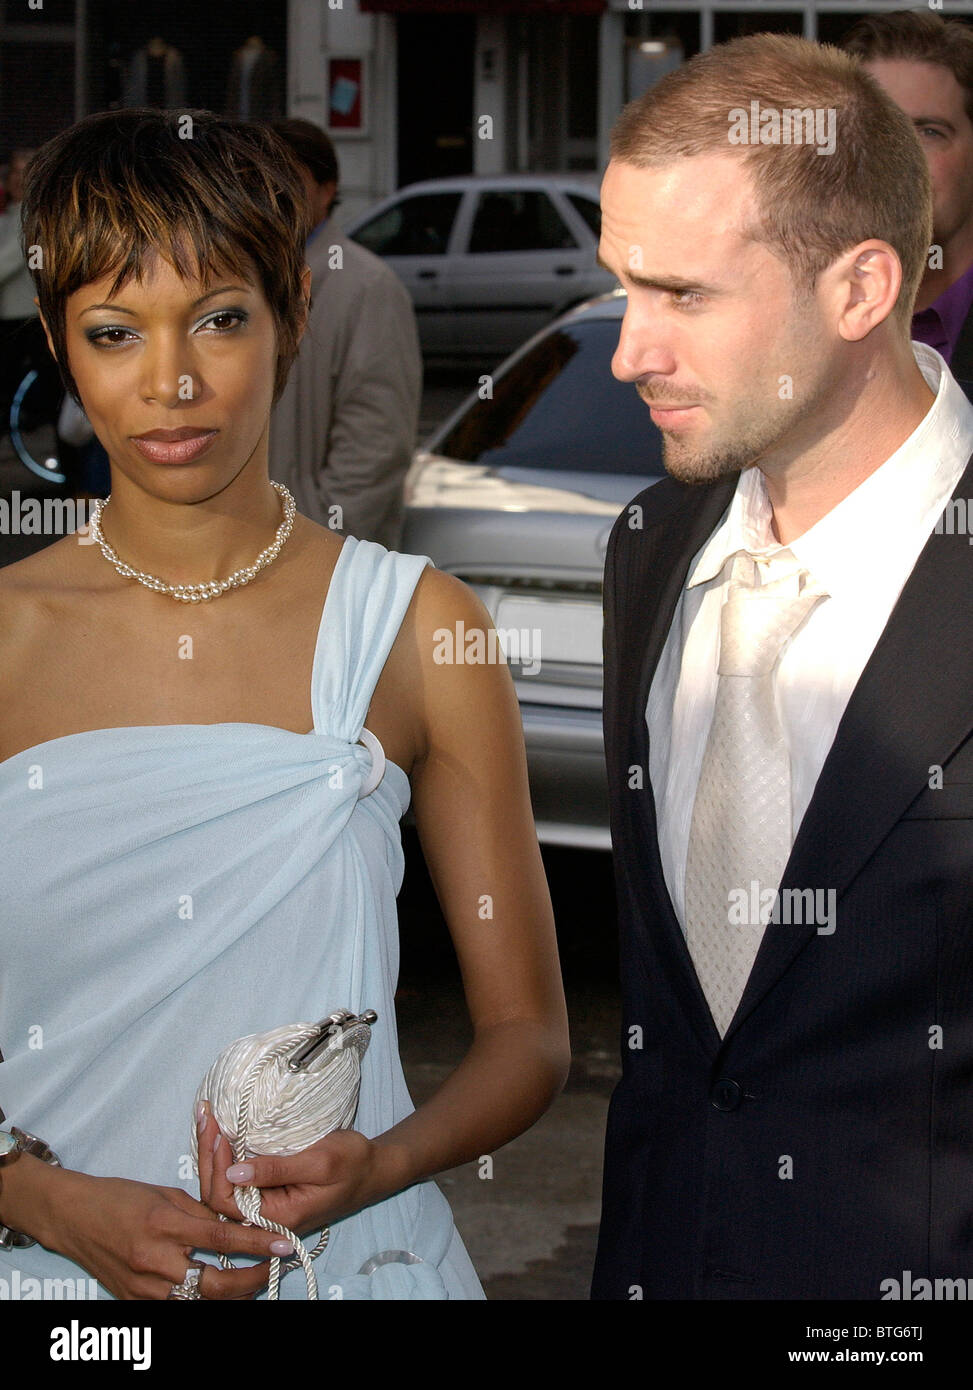 Actor Joseph Fiennes arriving with singer Leonie Casanova? at a Gala sponsored by Giorgio Armani - Stock Image